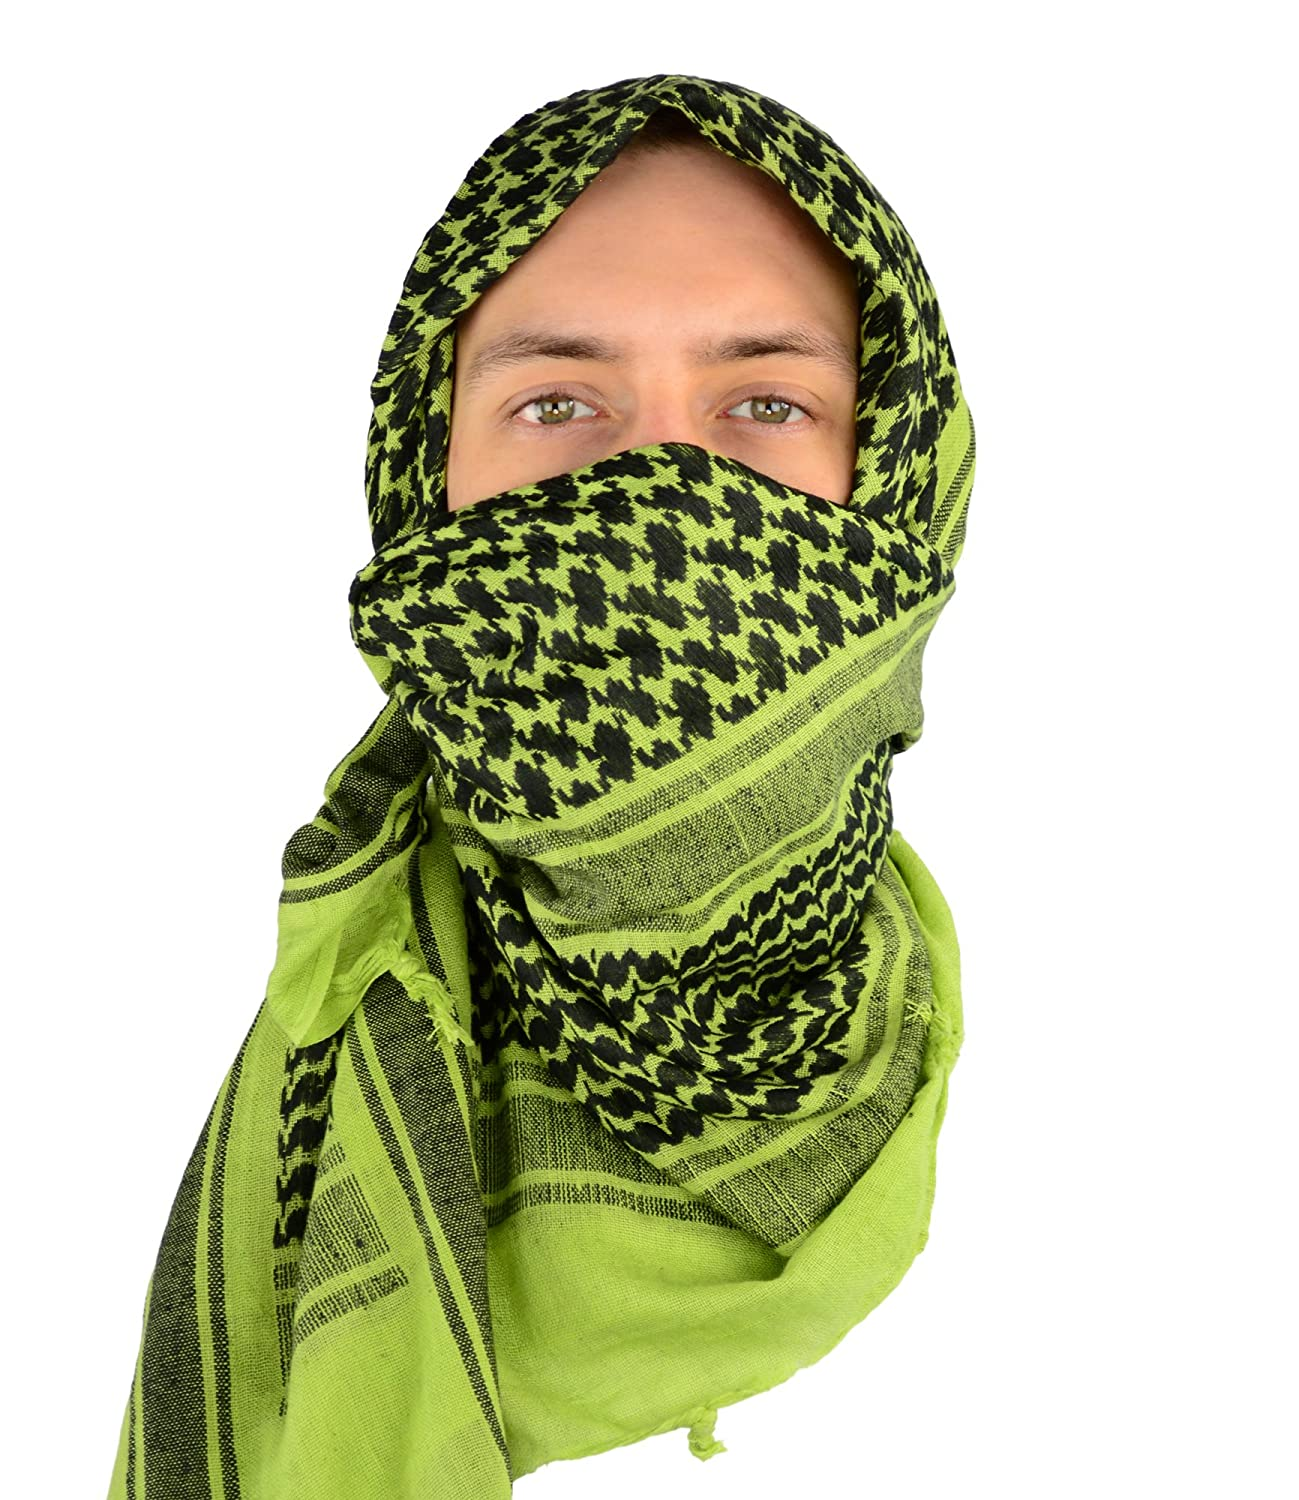 Mato & Hash Military Shemagh Tactical Desert 100% Cotton Keffiyeh Scarf Wrap White/Black CA2100 - 2